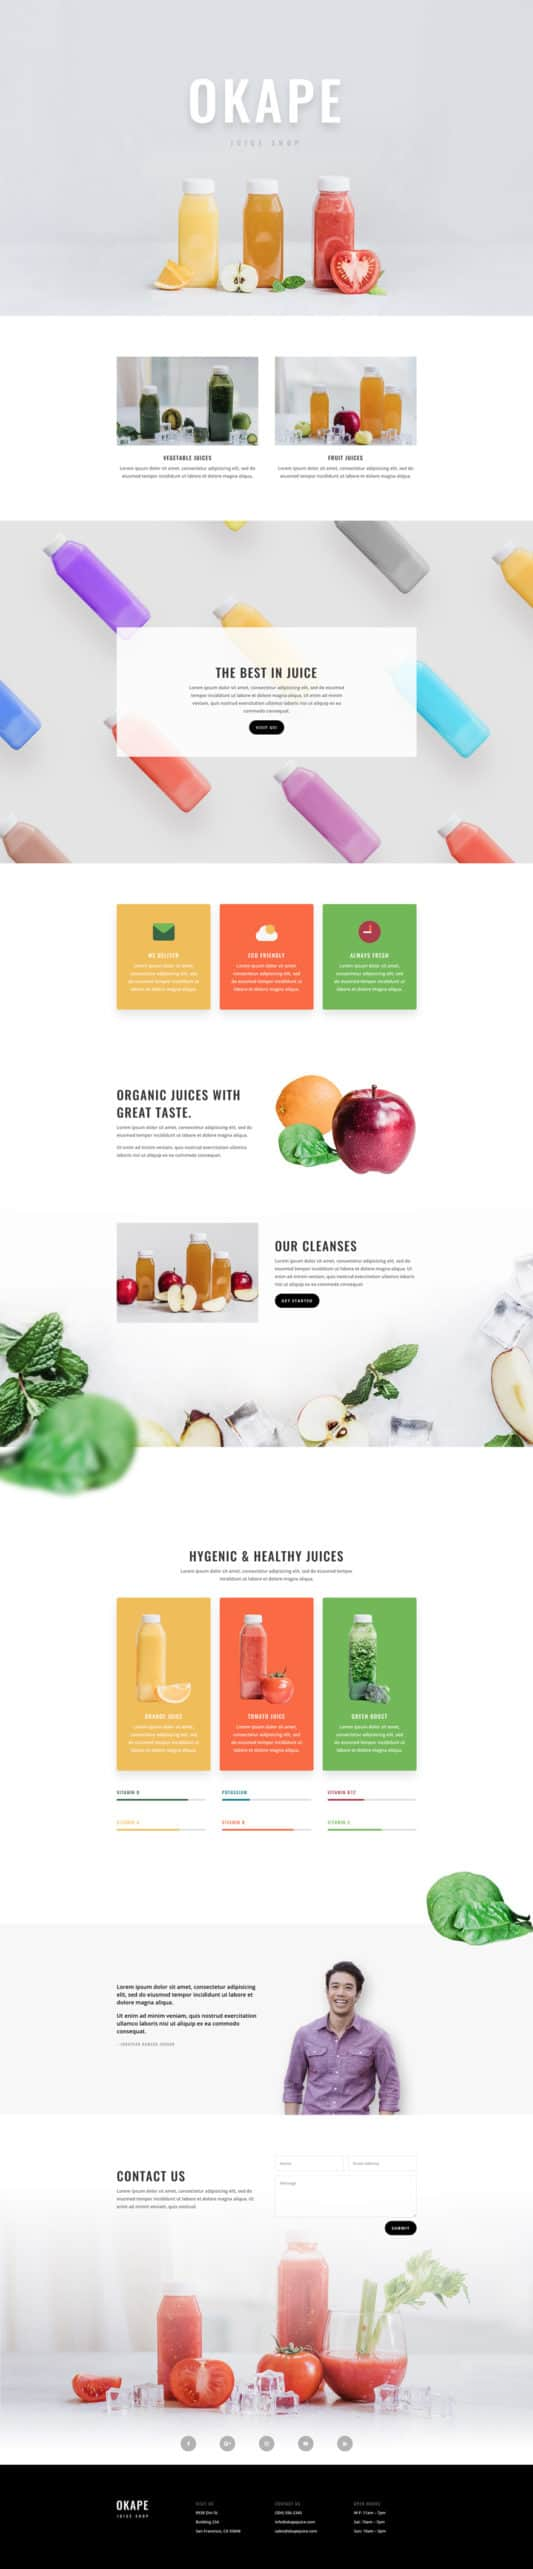 The Juice Shop Page Style: Homepage Design 1